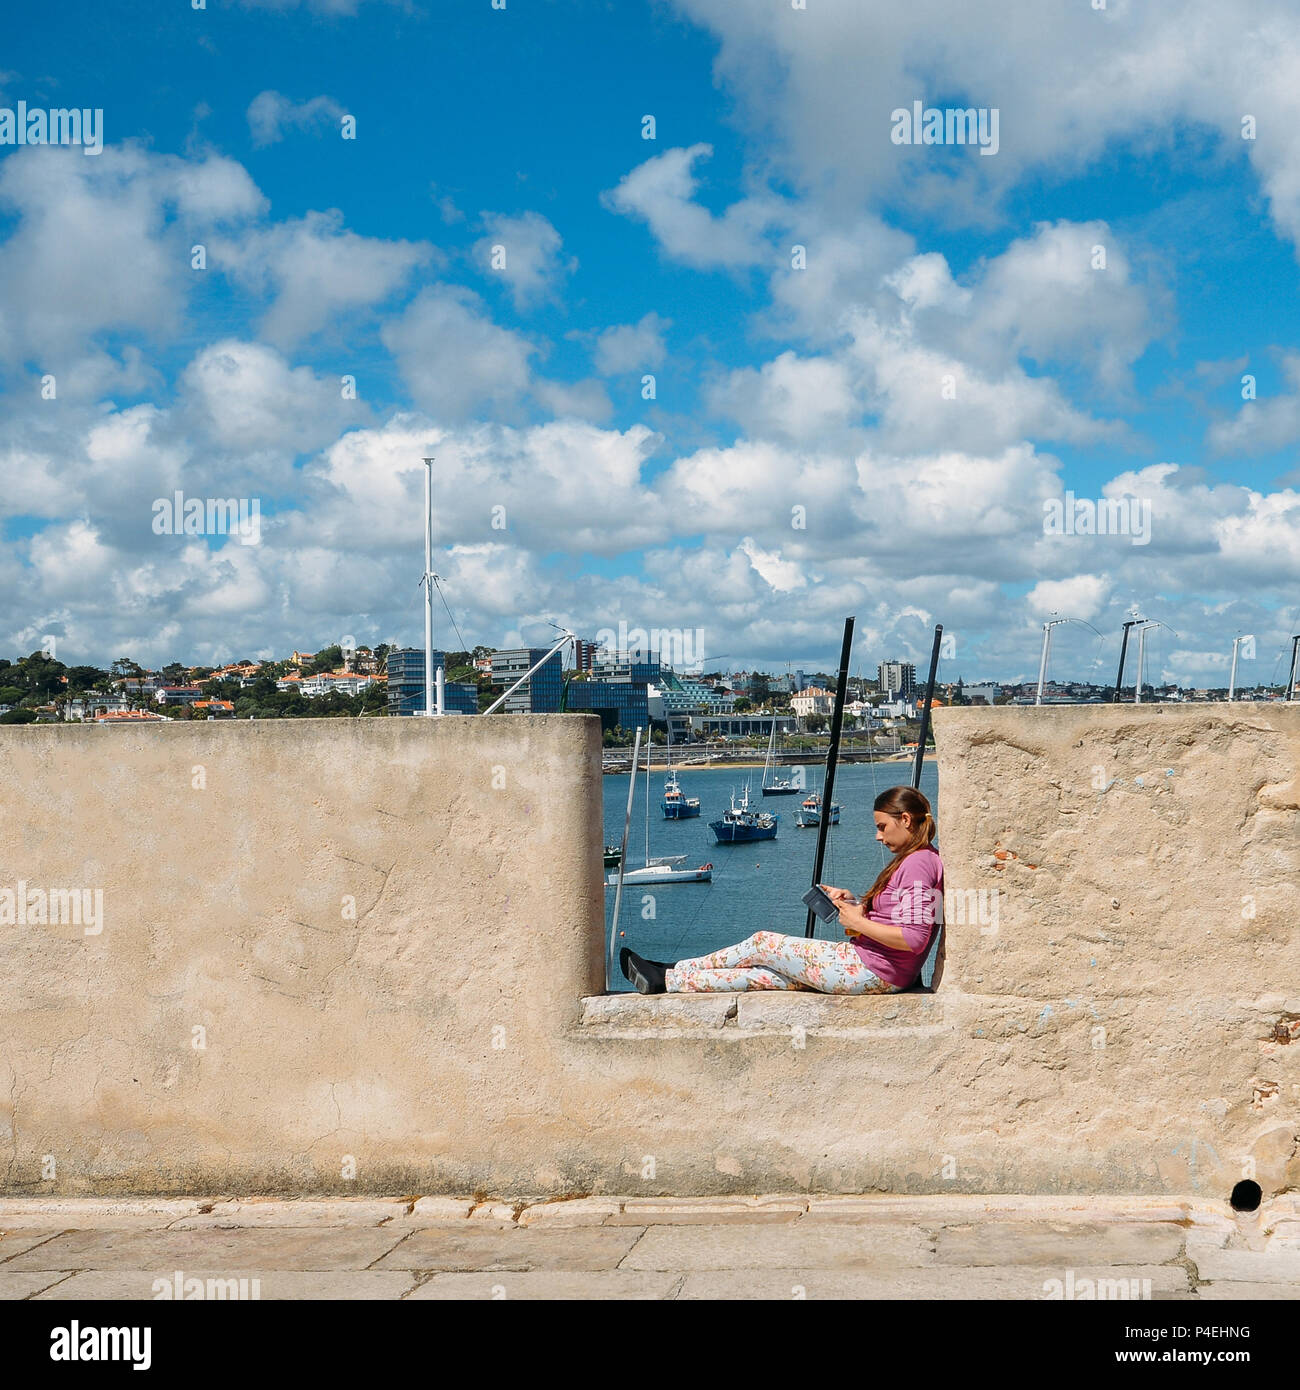 citadel-of-the-coastal-town-of-cascais-P4EHNG.jpg